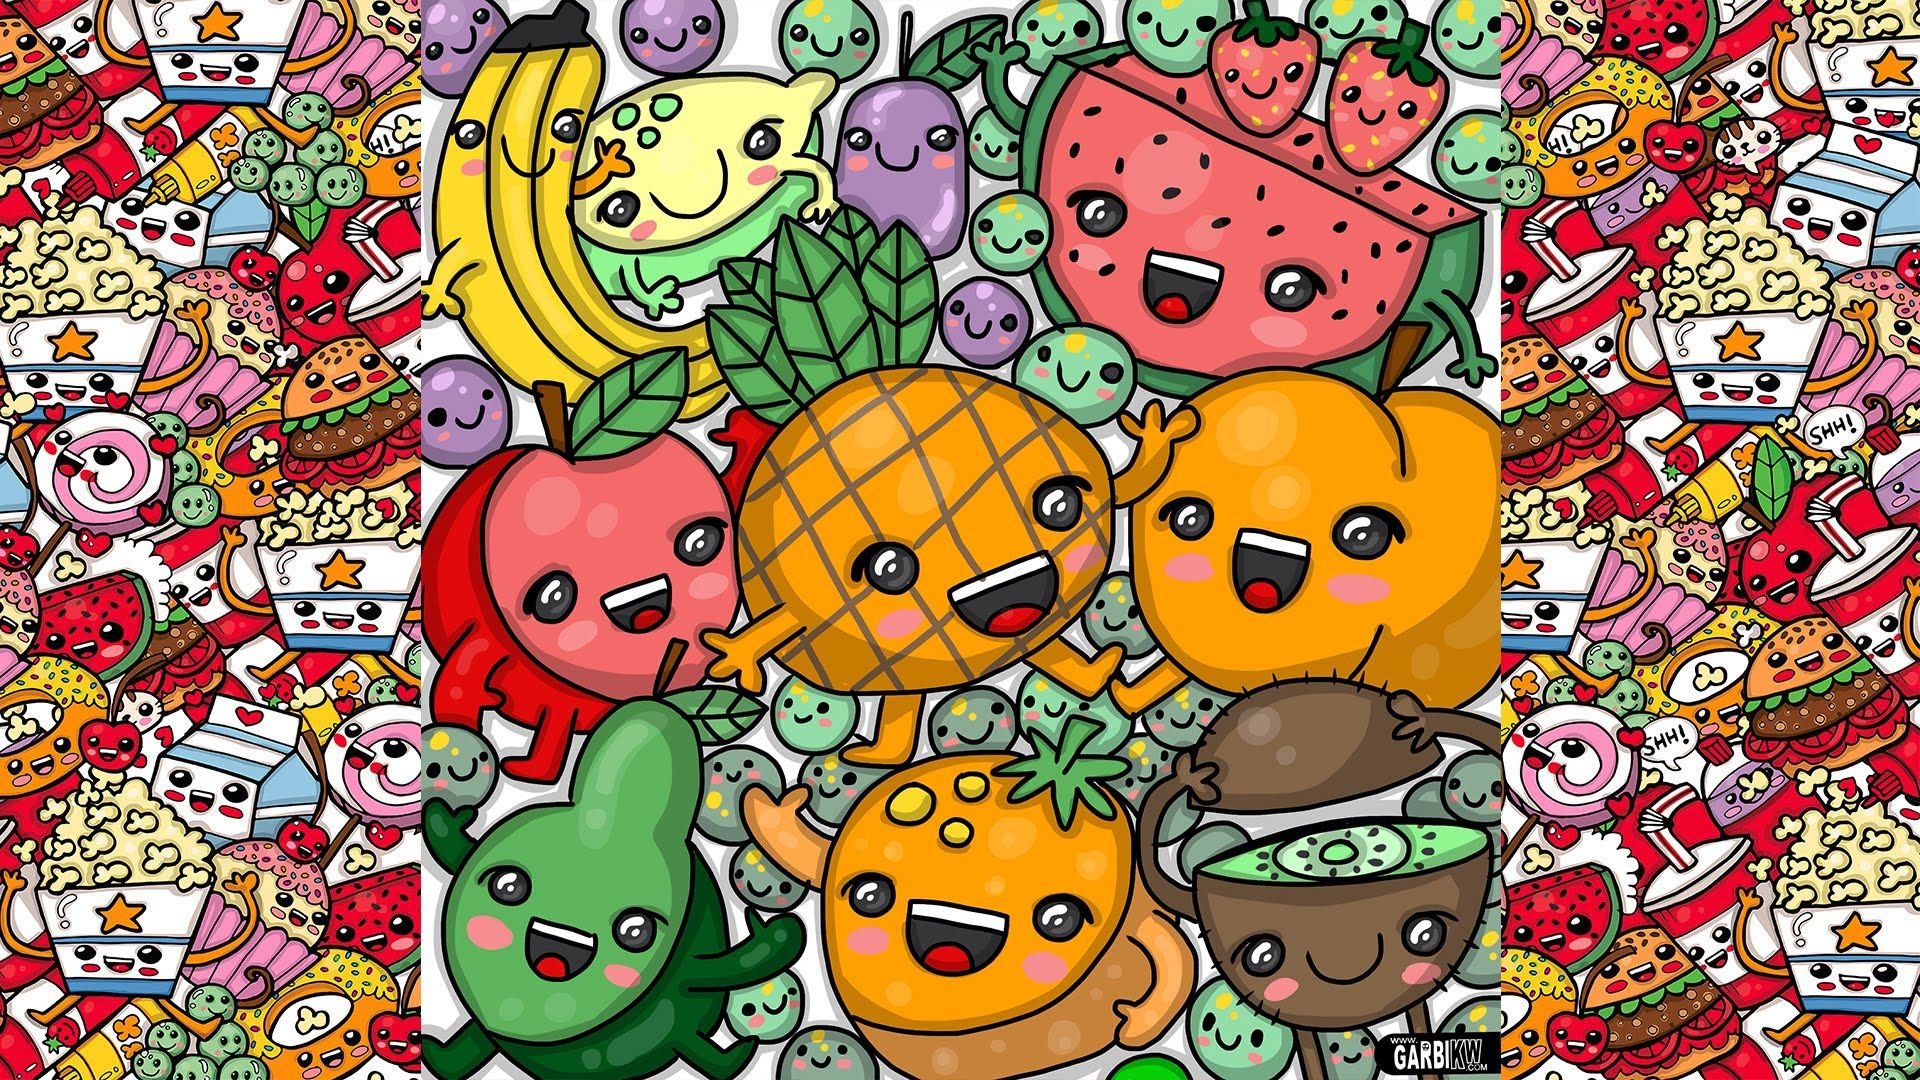 1920x1080 How To Draw Party Kawaii Fruits by Garbi KW - YouTube